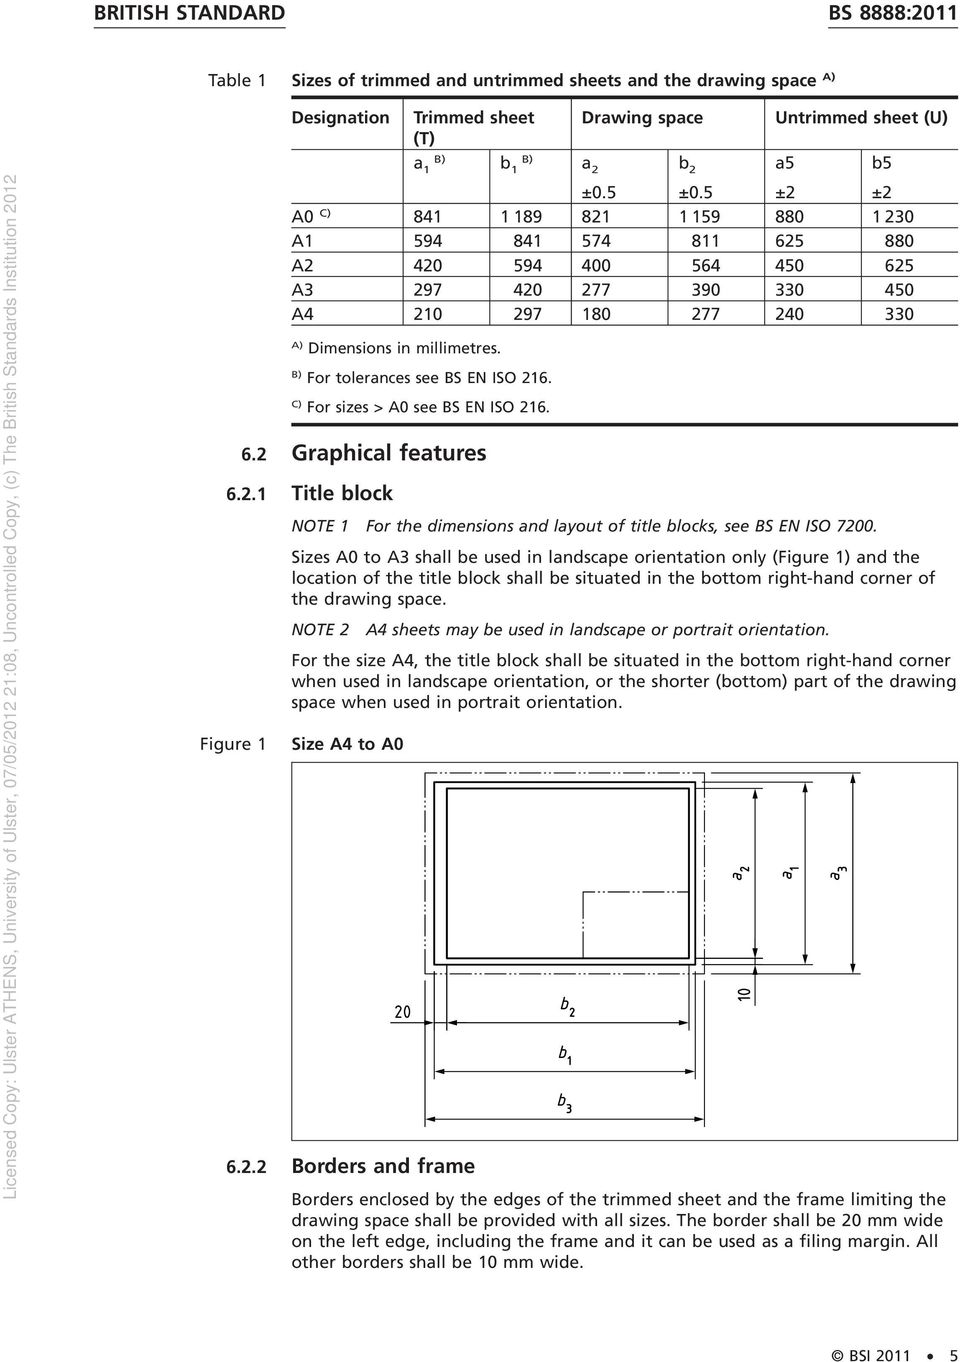 iso 7200 title block dimensions